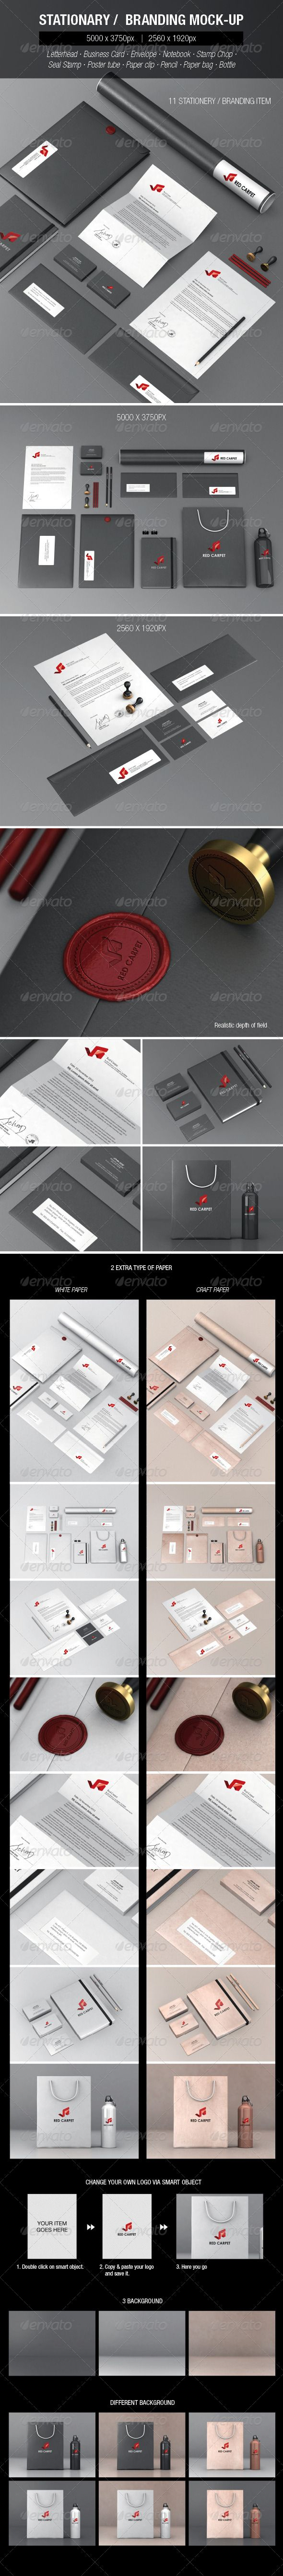 Stationery Branding Mock-ups Set 2 - Stationery Print